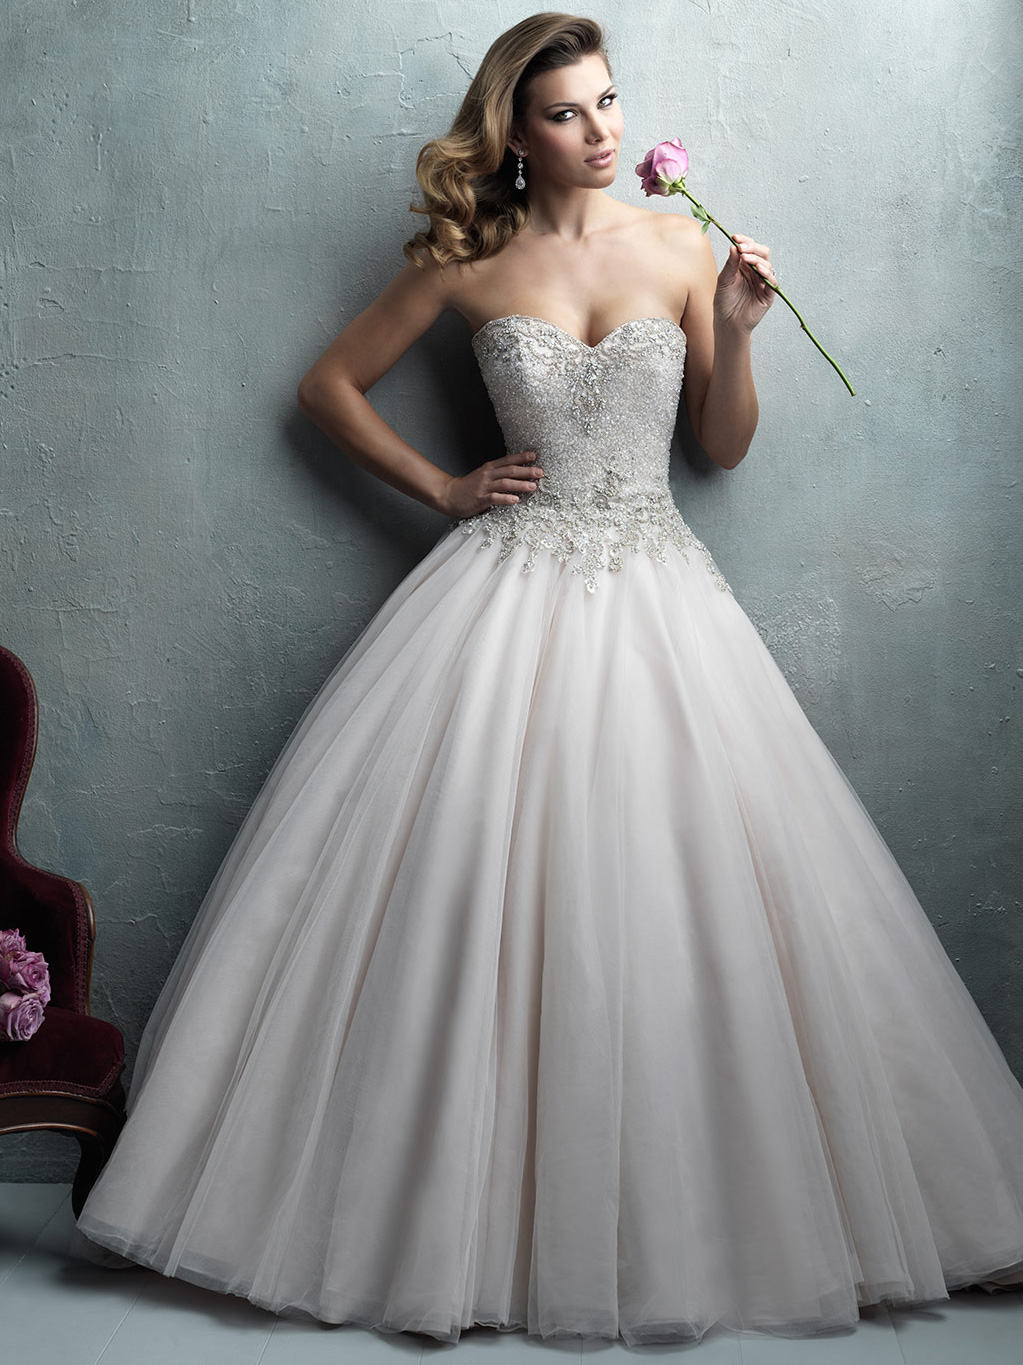 Allure couture strapless tulle skirt wedding dress c323 for Crystal embroidered wedding dress